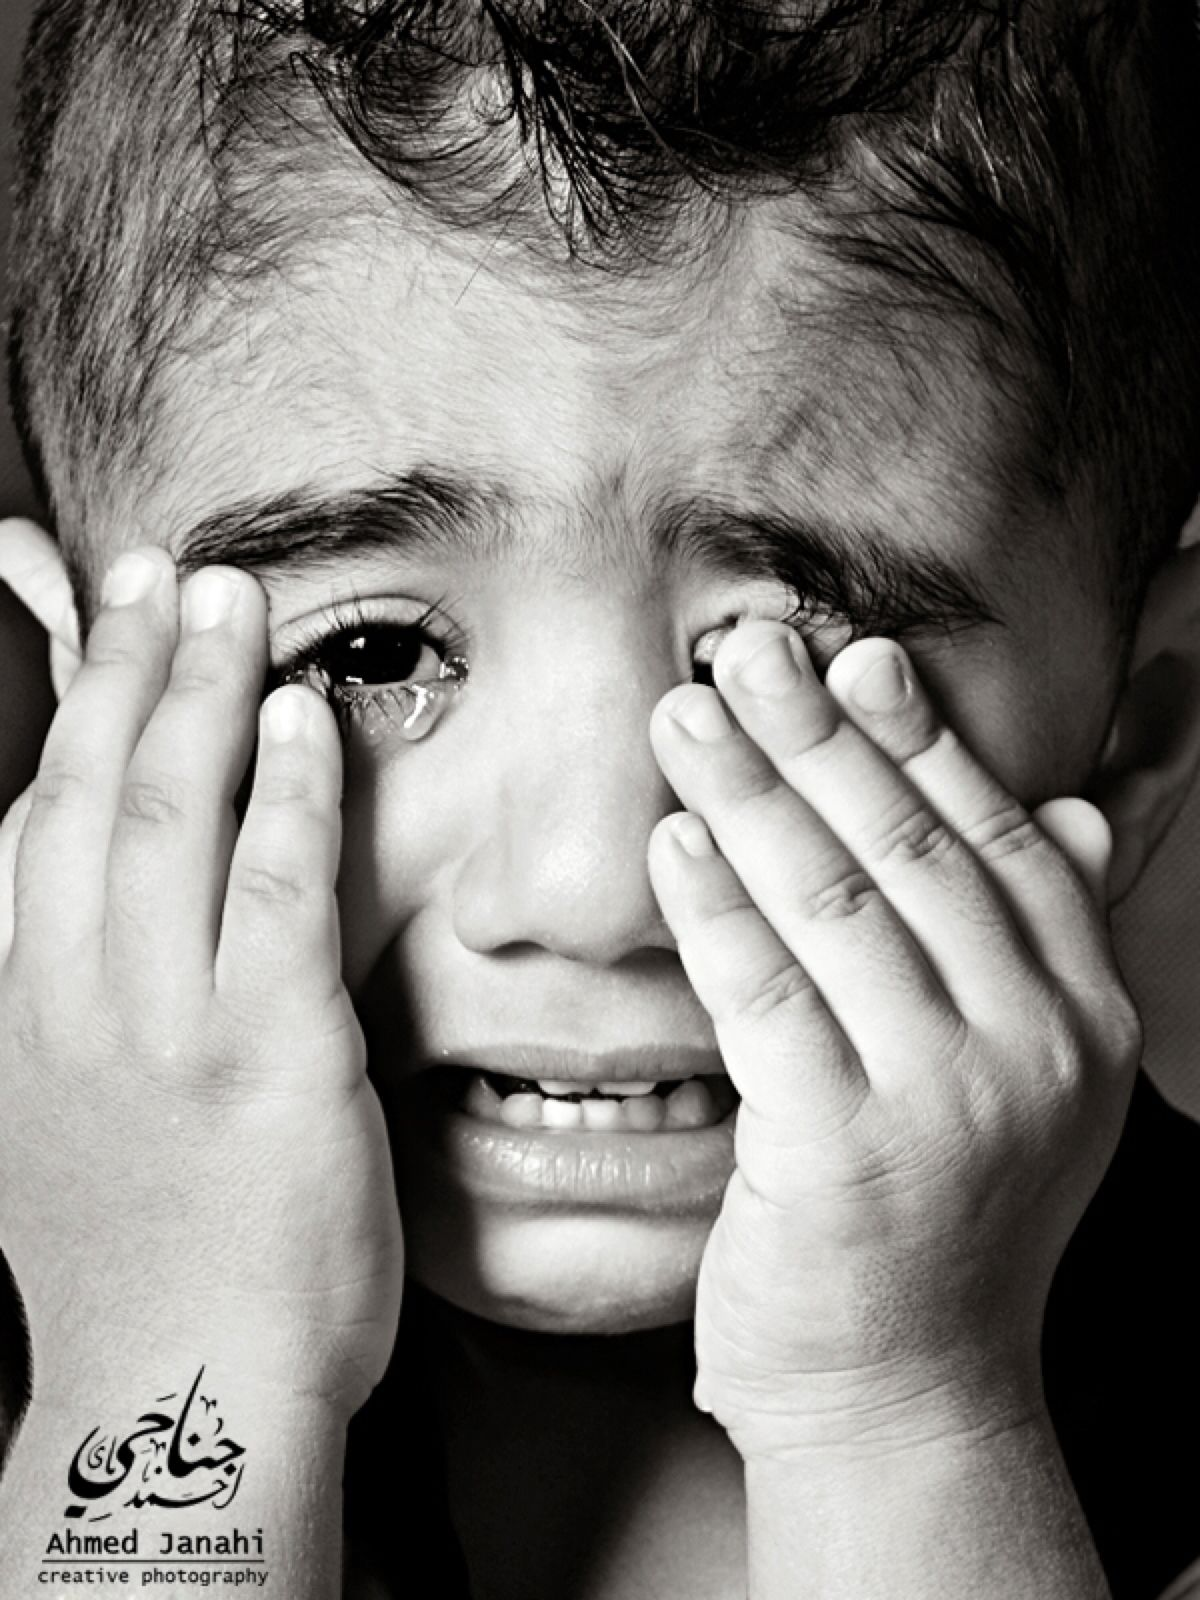 Crying Child Crying Photography Boy Crying Expressions Photography